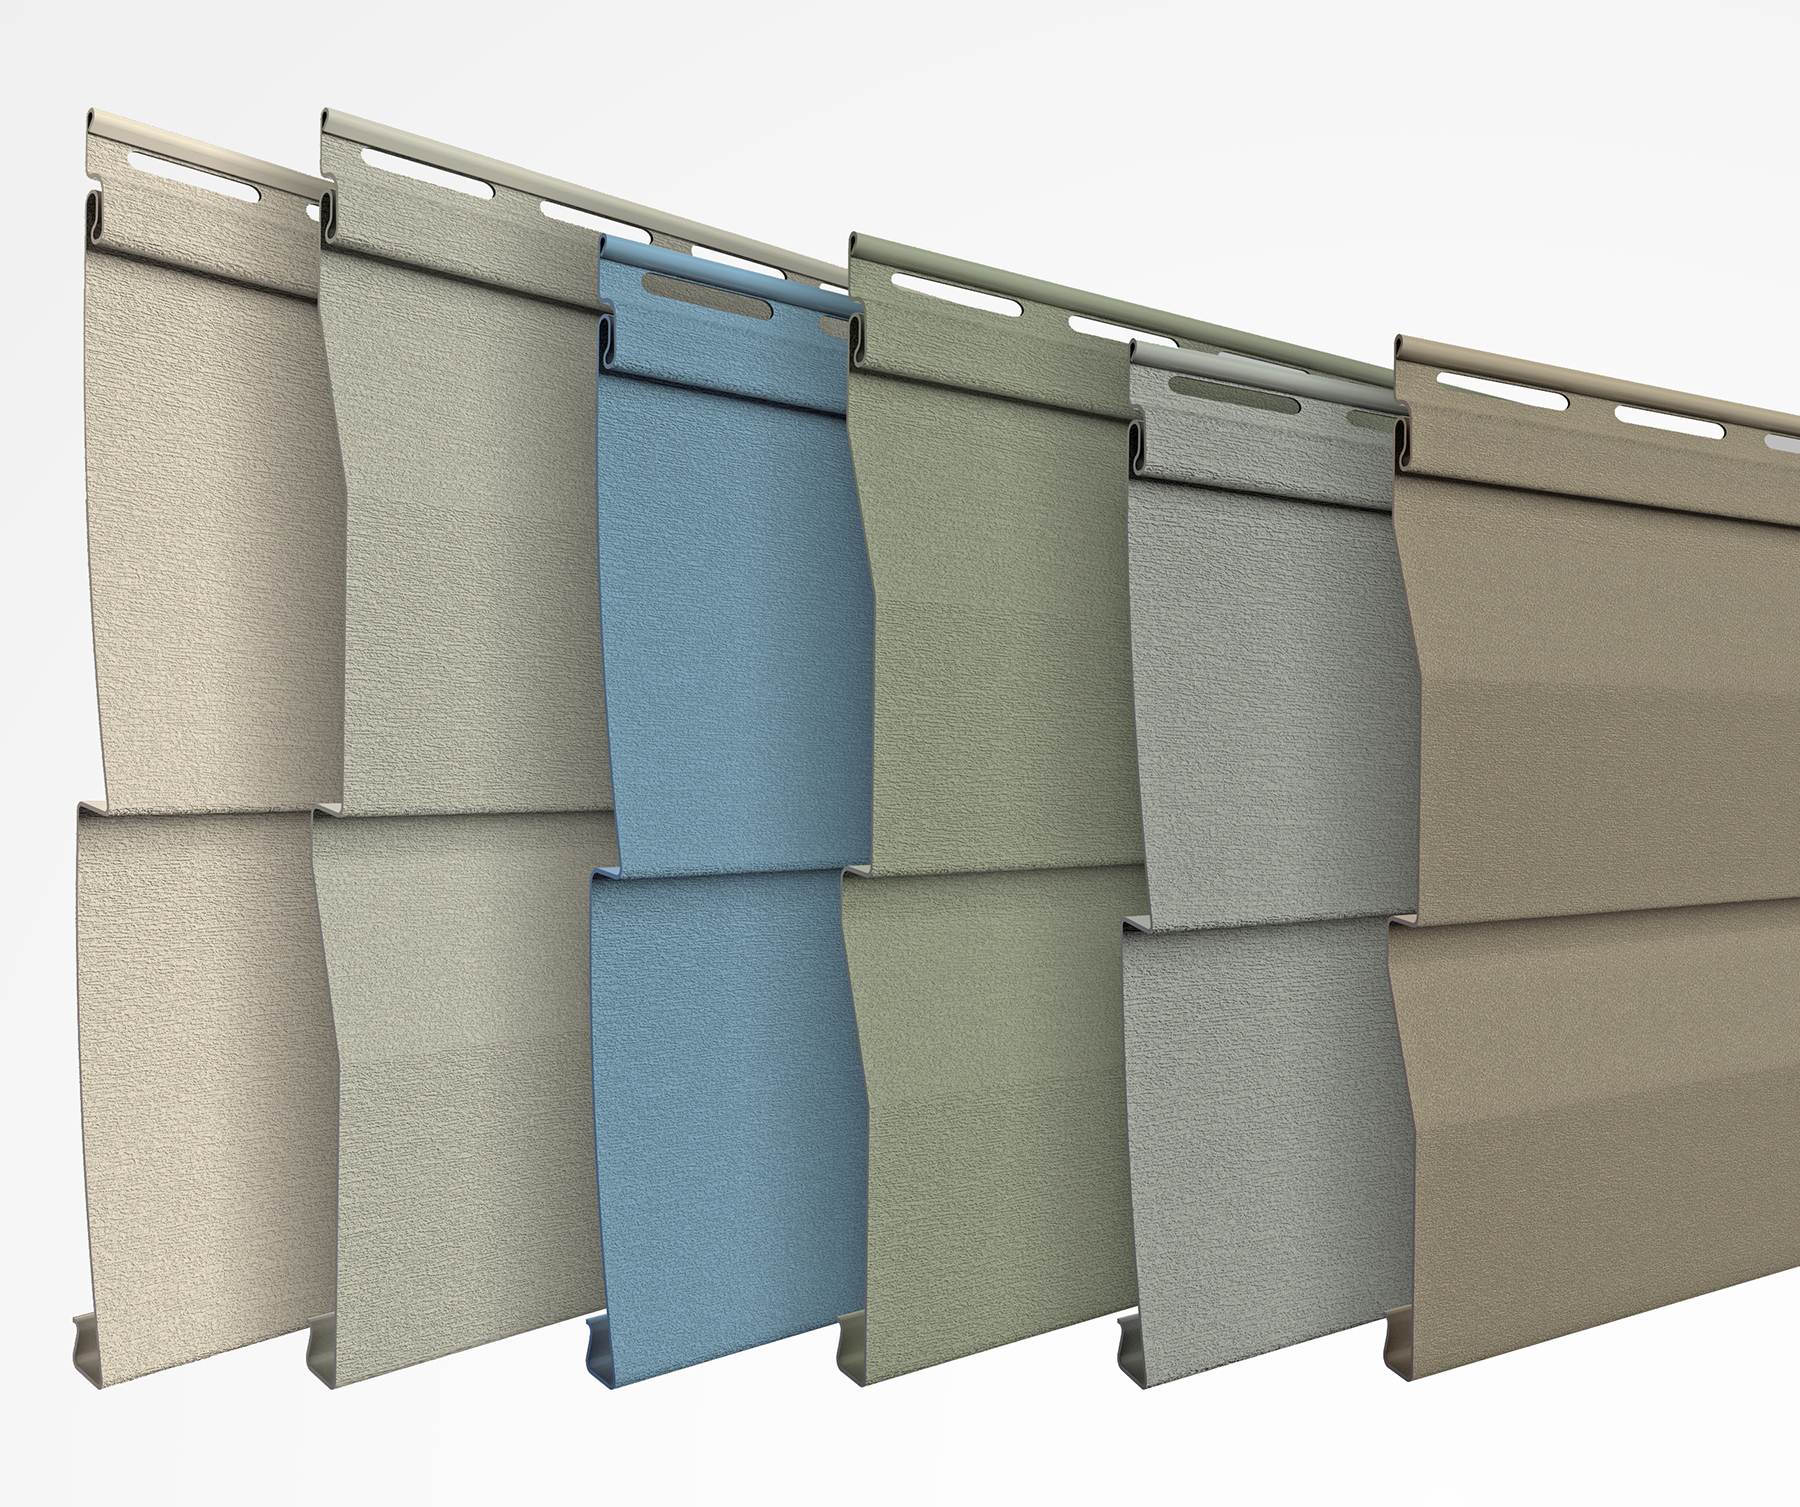 ProVia Introduces Super Polymer Siding | Residential Products Online